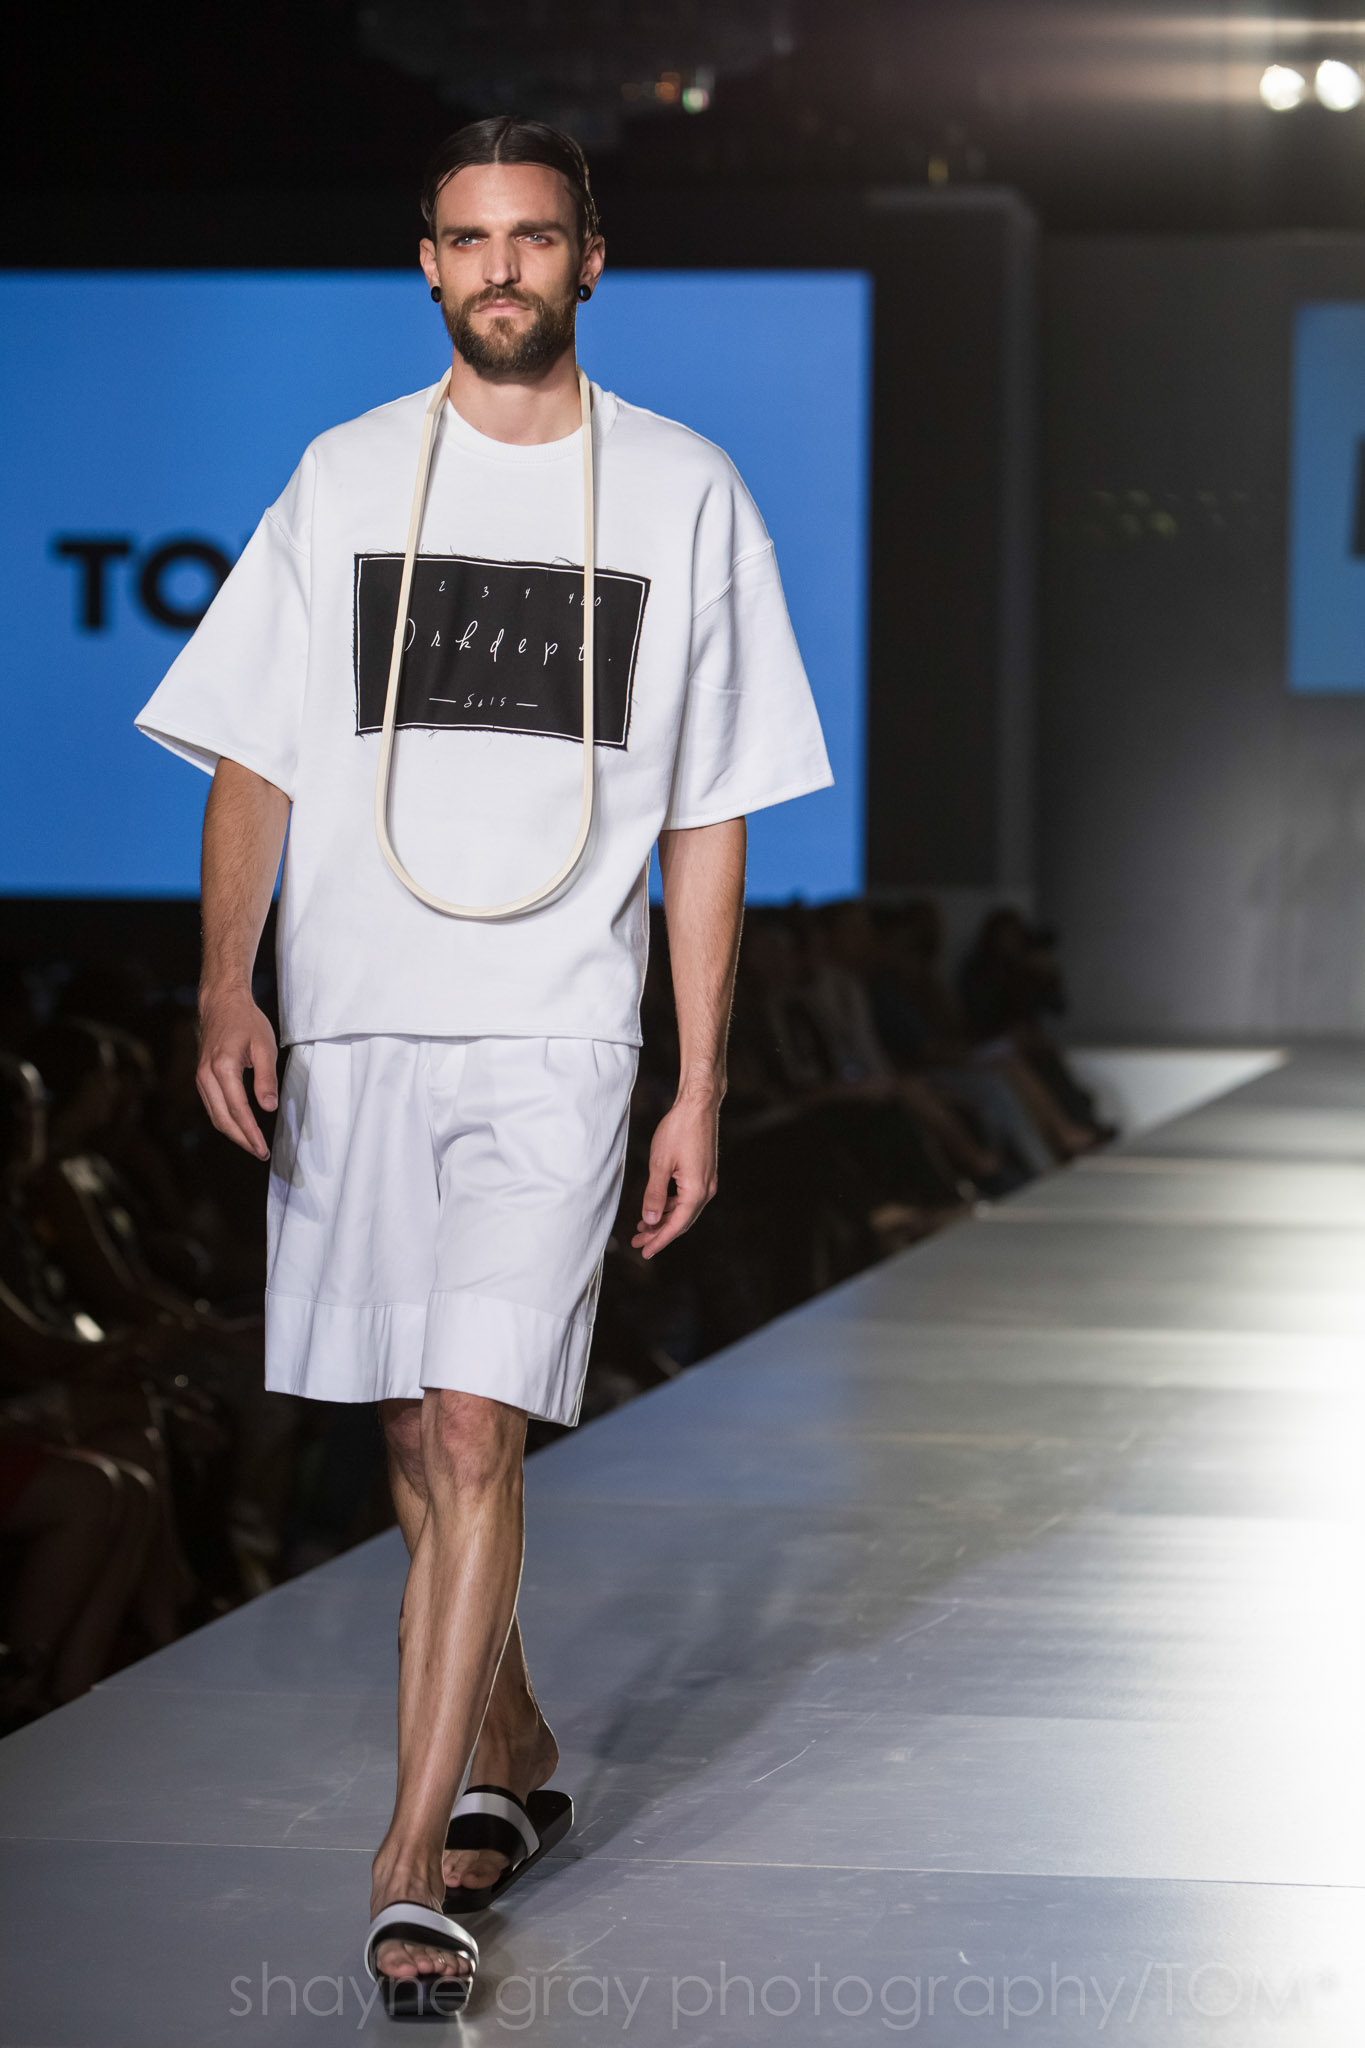 Shayne-Gray-Toronto-men's-fashion_week-TOM-wrkdept-8708.jpg